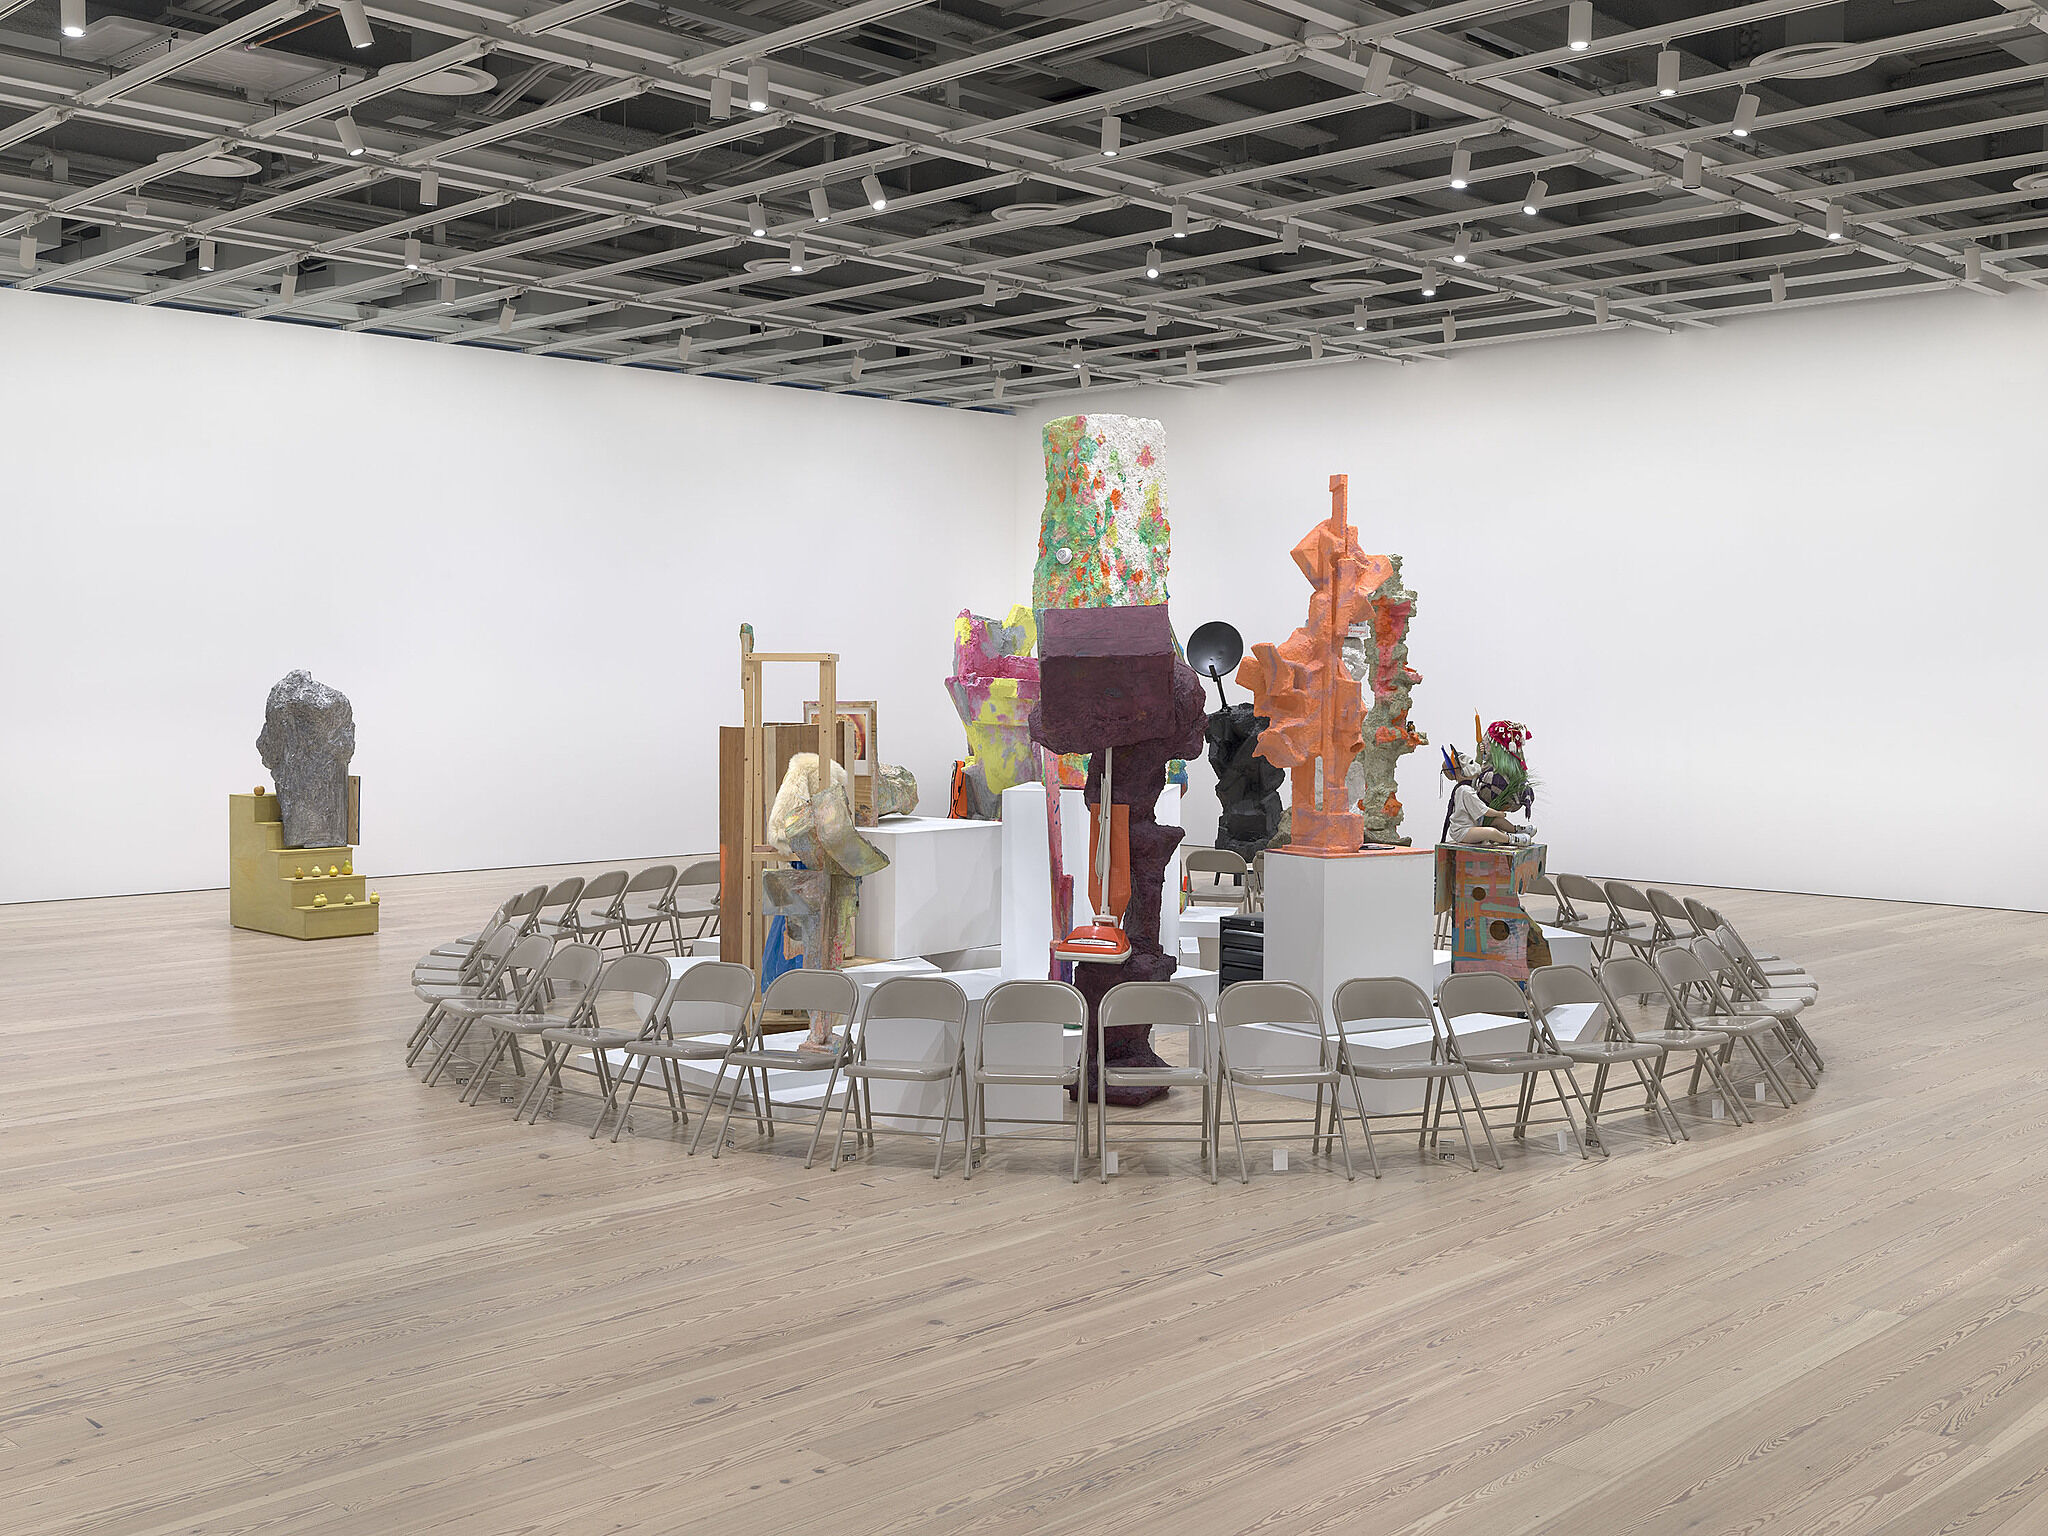 A ring of chairs surround various sculptures in a gallery.